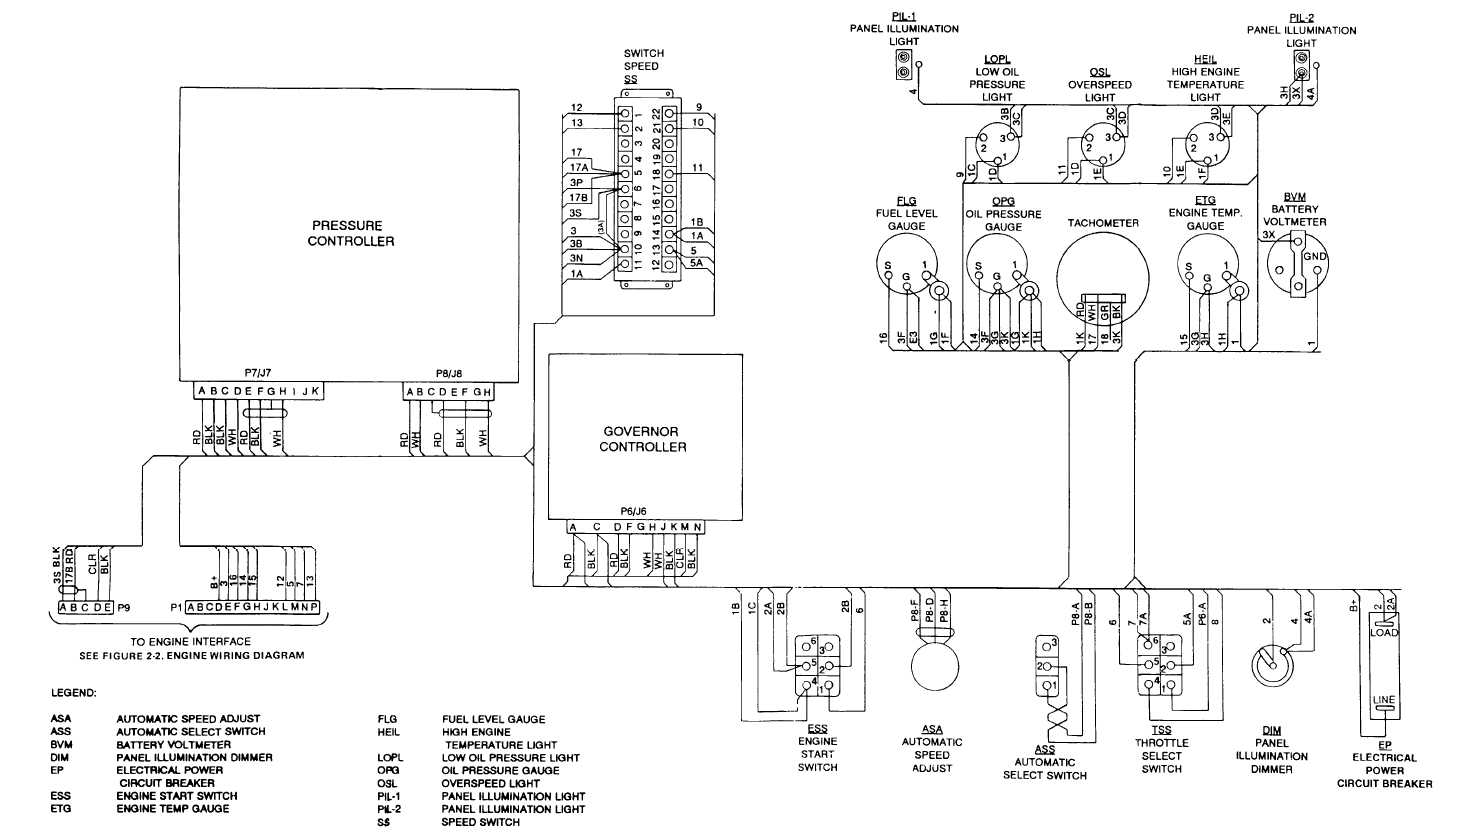 WRG-5771] 4320 Wiring Diagram on